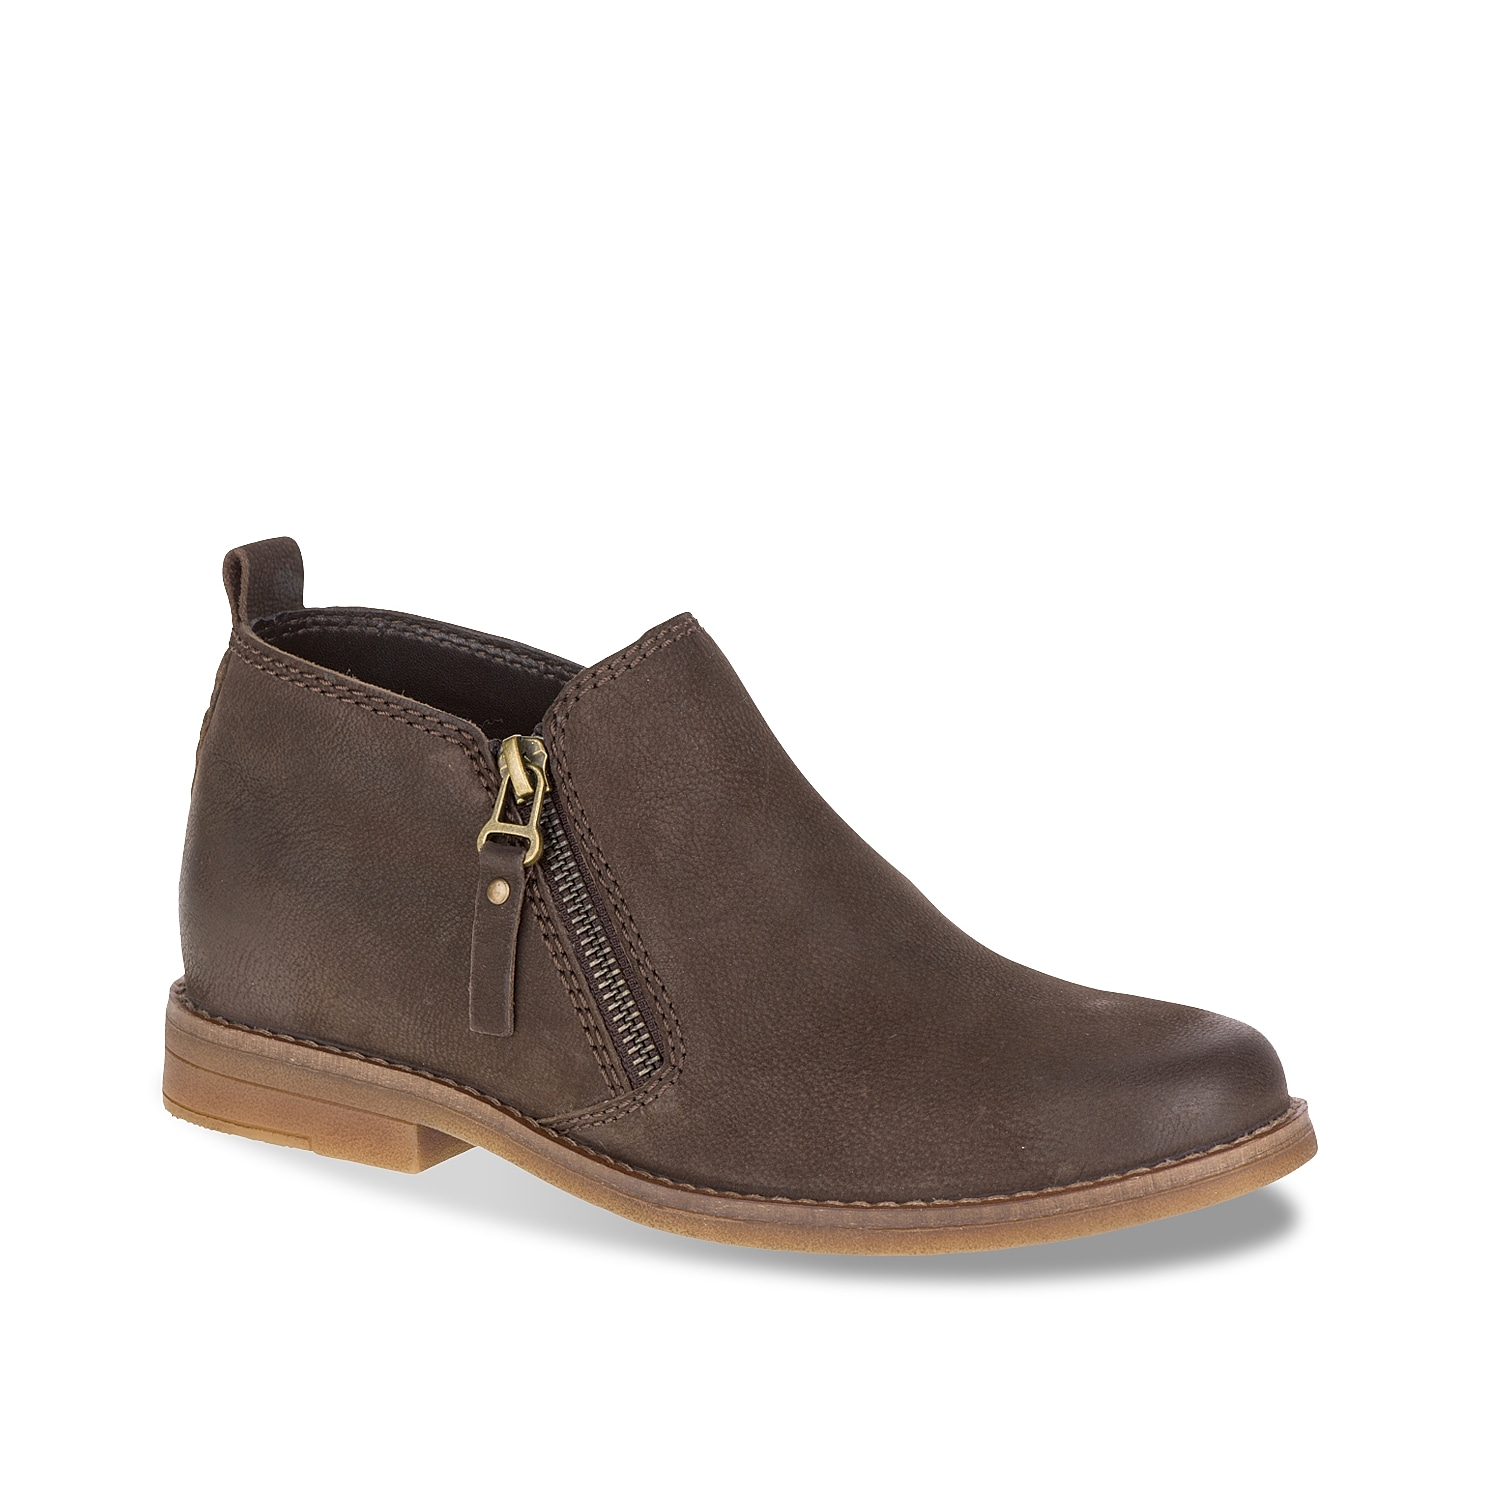 The Mazin Cayto bootie from Hush Puppies will pair with nearly any casual look! This ankle boot features a hidden wedge heel for added height!